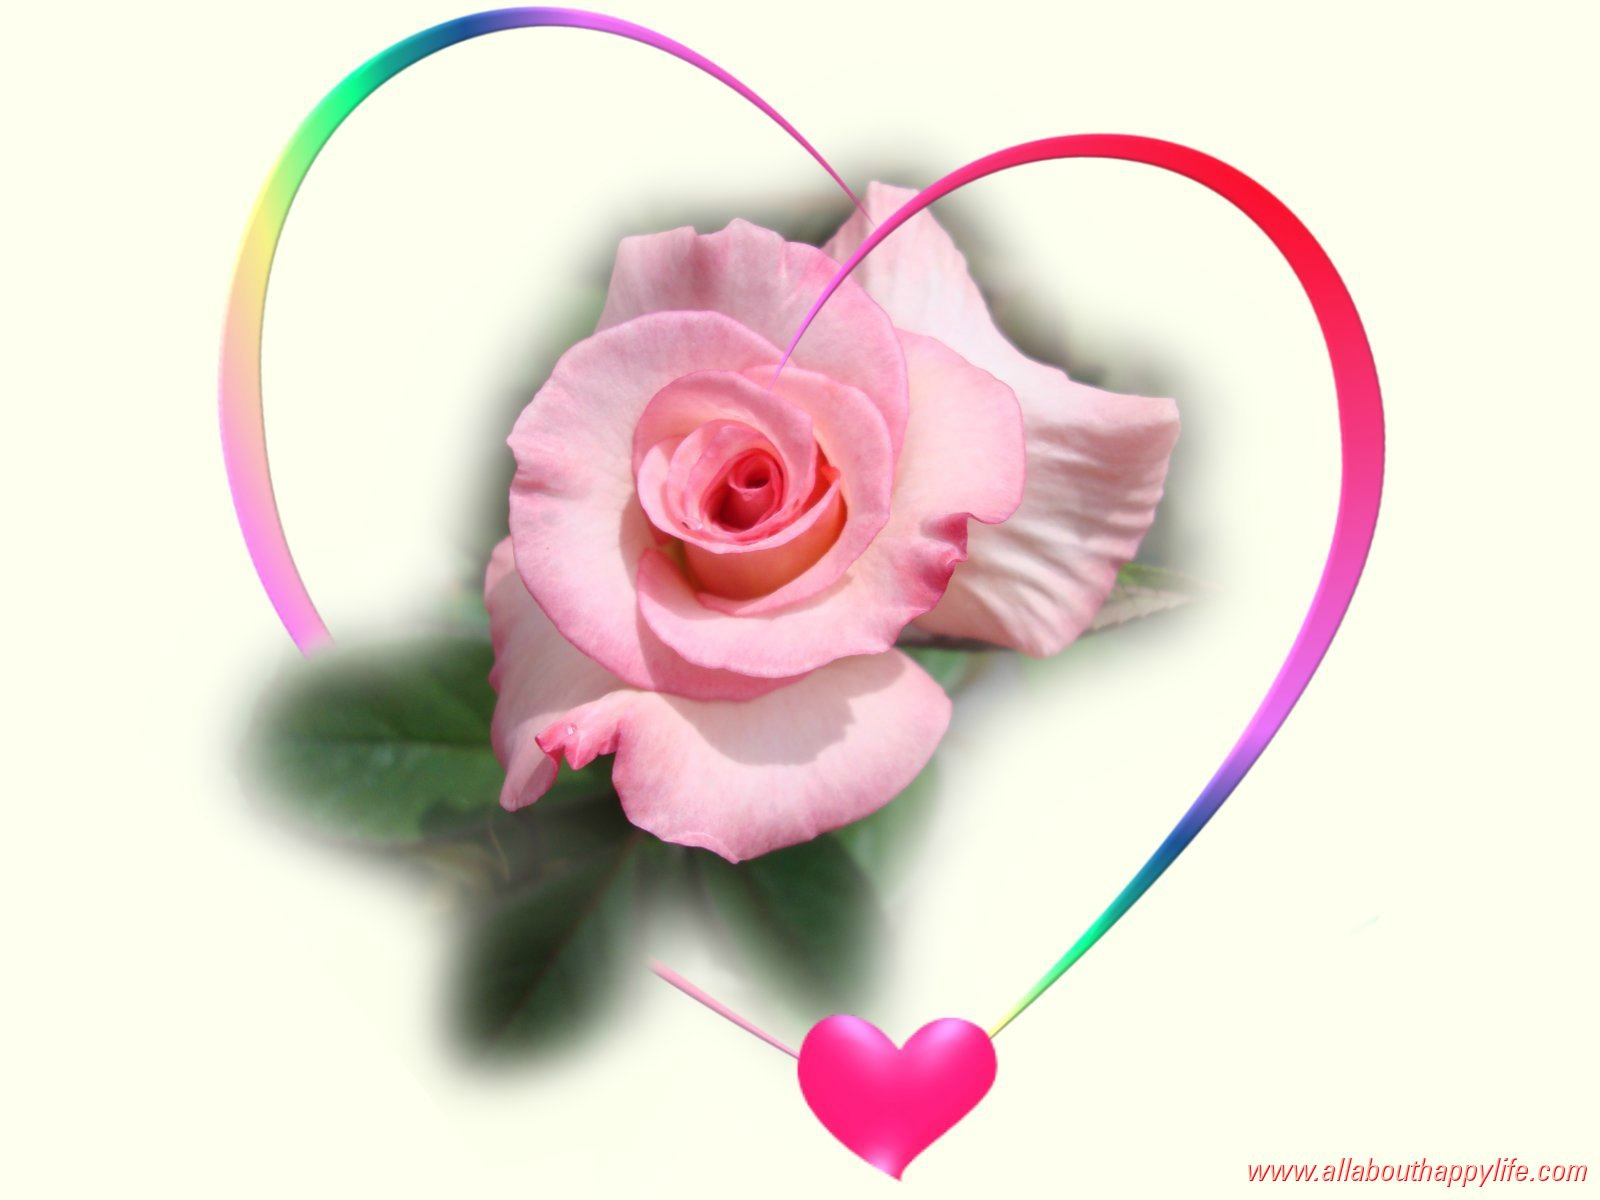 image amour rose